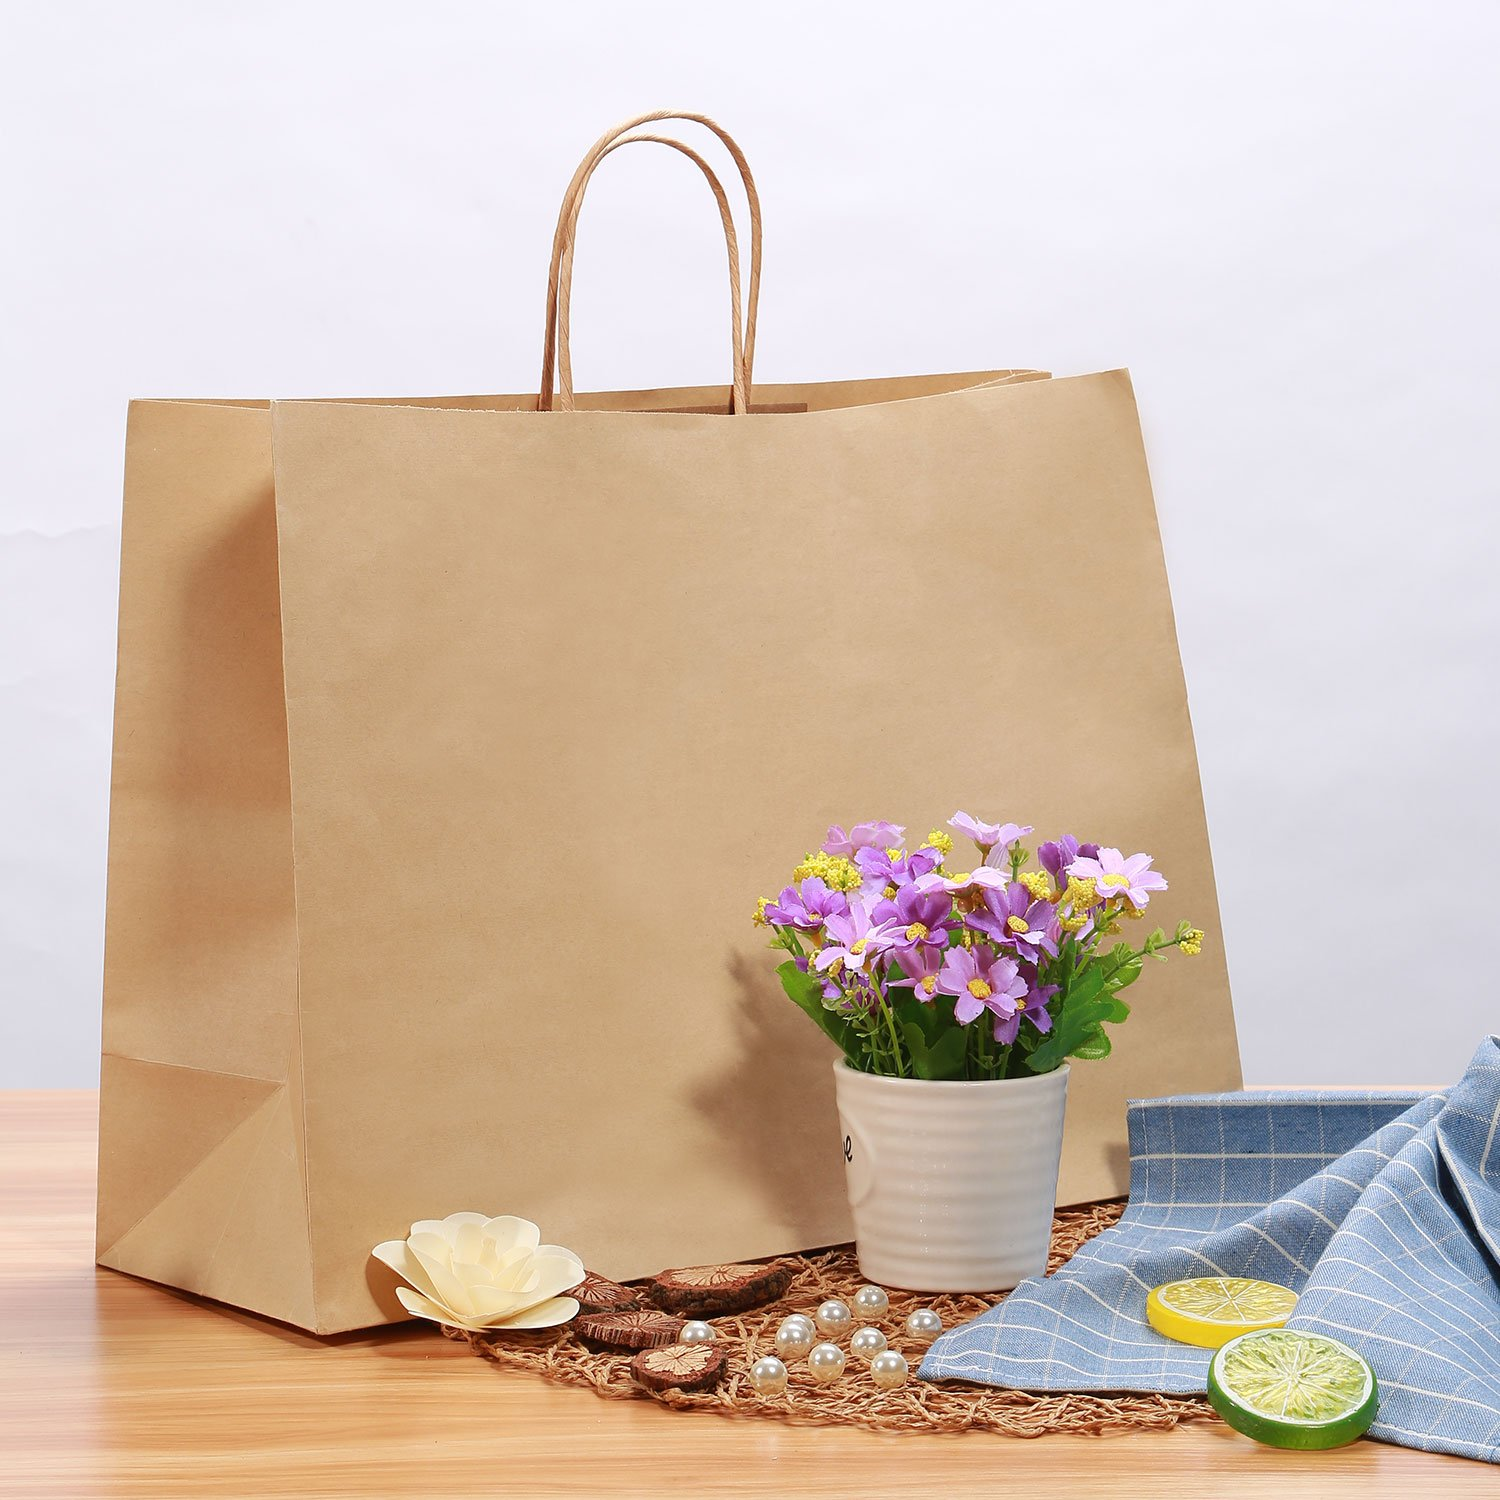 Road 16x6x12 inches Large Kraft Brown Paper Bags with Handles Grocery Mechandise 50 Shopping Party Bags